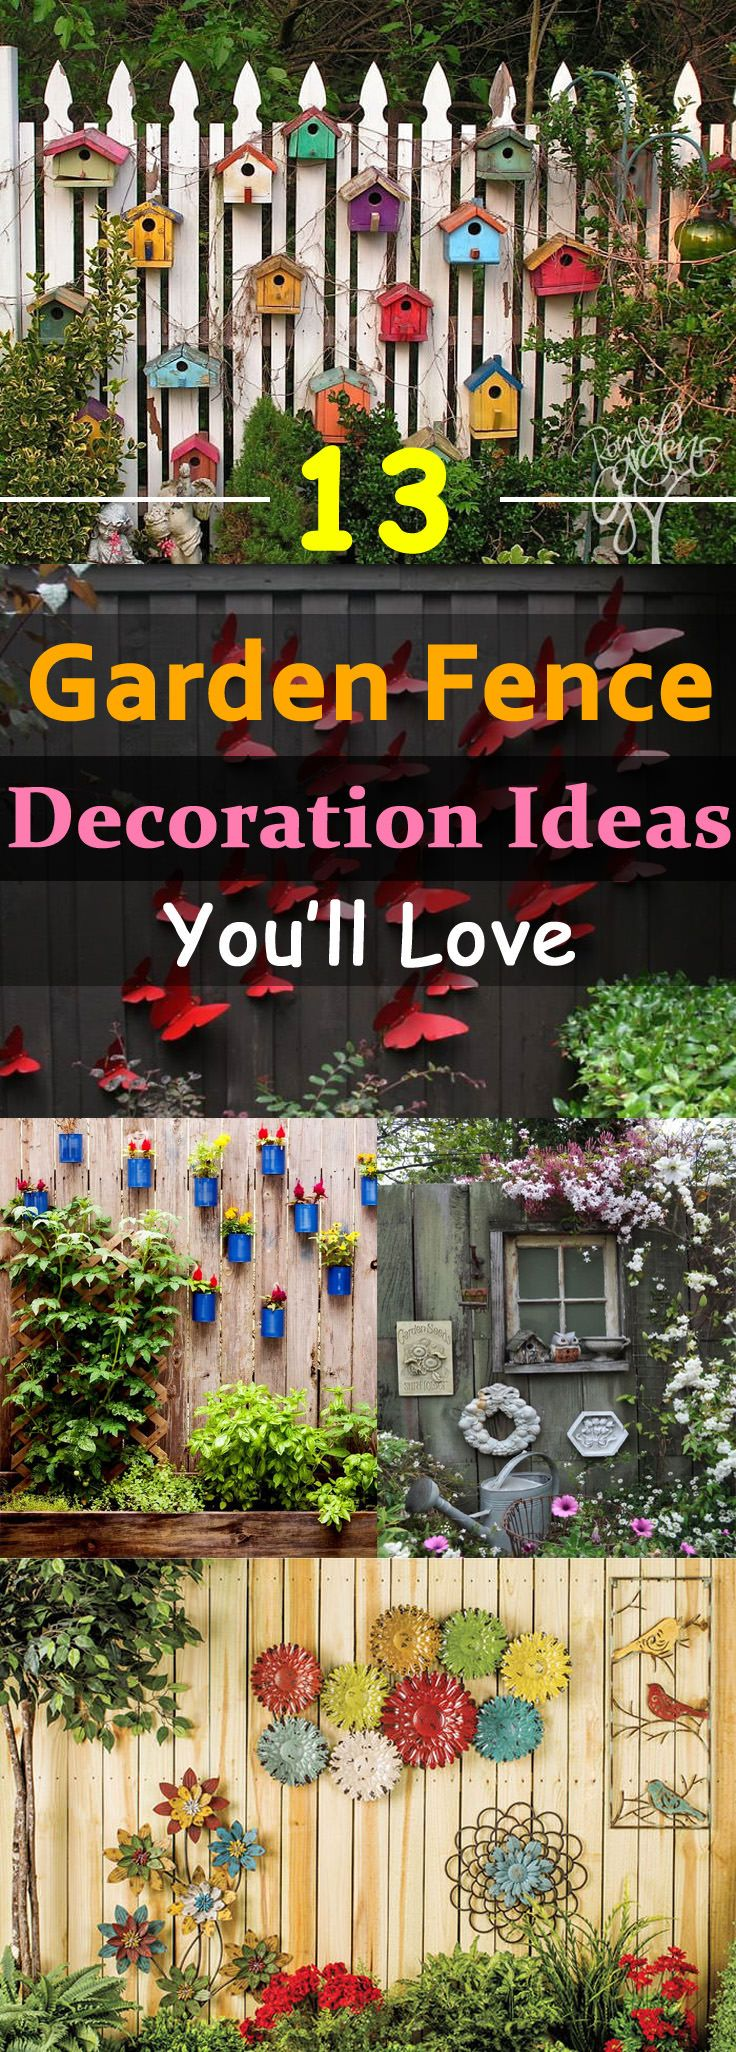 Fence Garden Ideas backyard vegetable garden backyard vegetable garden ideas woodworking project plans 2048x1536 13 Garden Fence Decoration Ideas To Follow